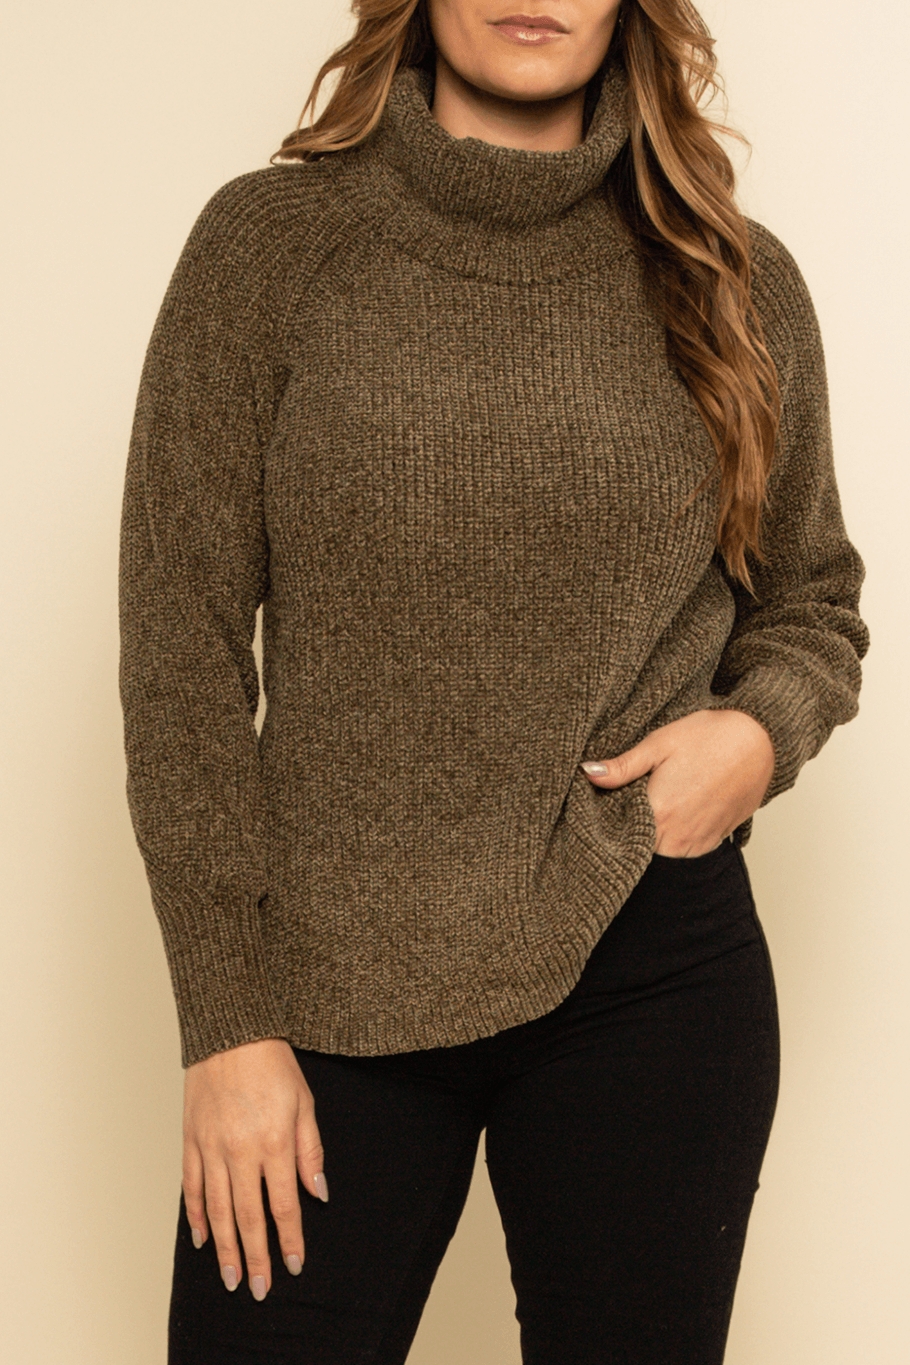 Breckenridge Turtleneck Sweater - Olive - Shore